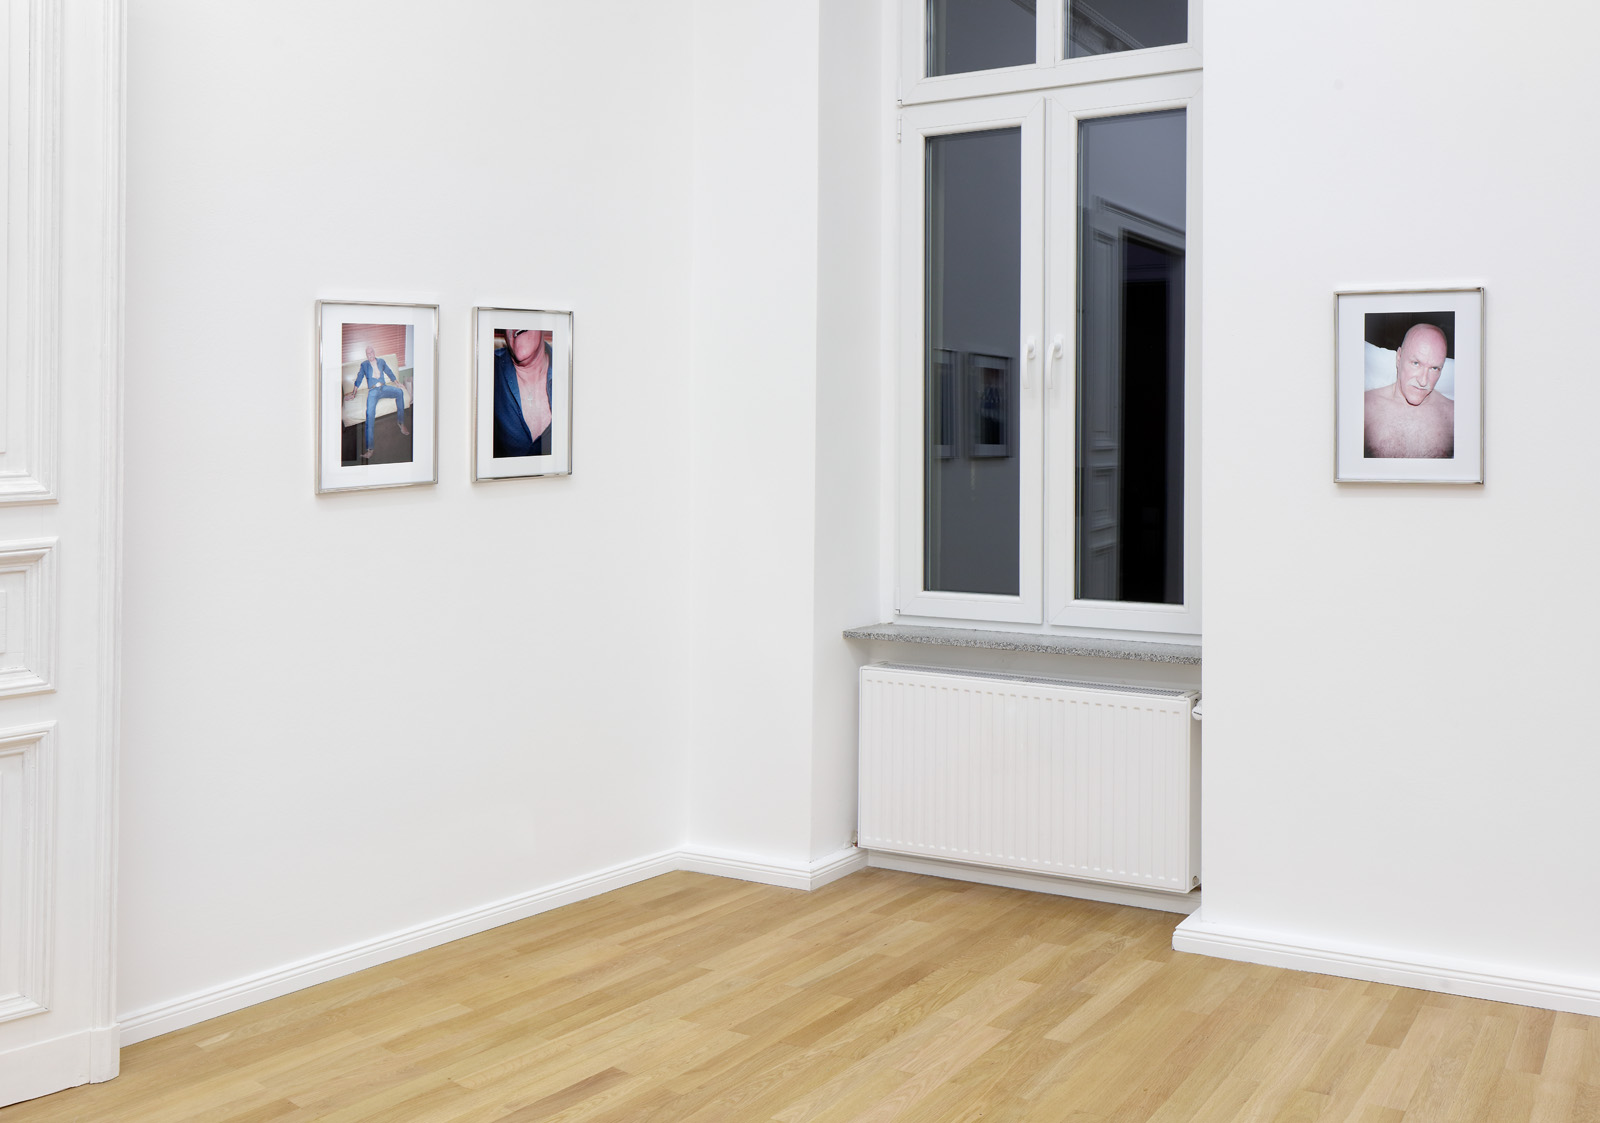 Installation view, Kayode Ojo,  Closer  Left to Right:  Silver (Dallas) II , 2018;  Silver (Dallas) I , 2018;  Silver (Dallas) IV , 2018